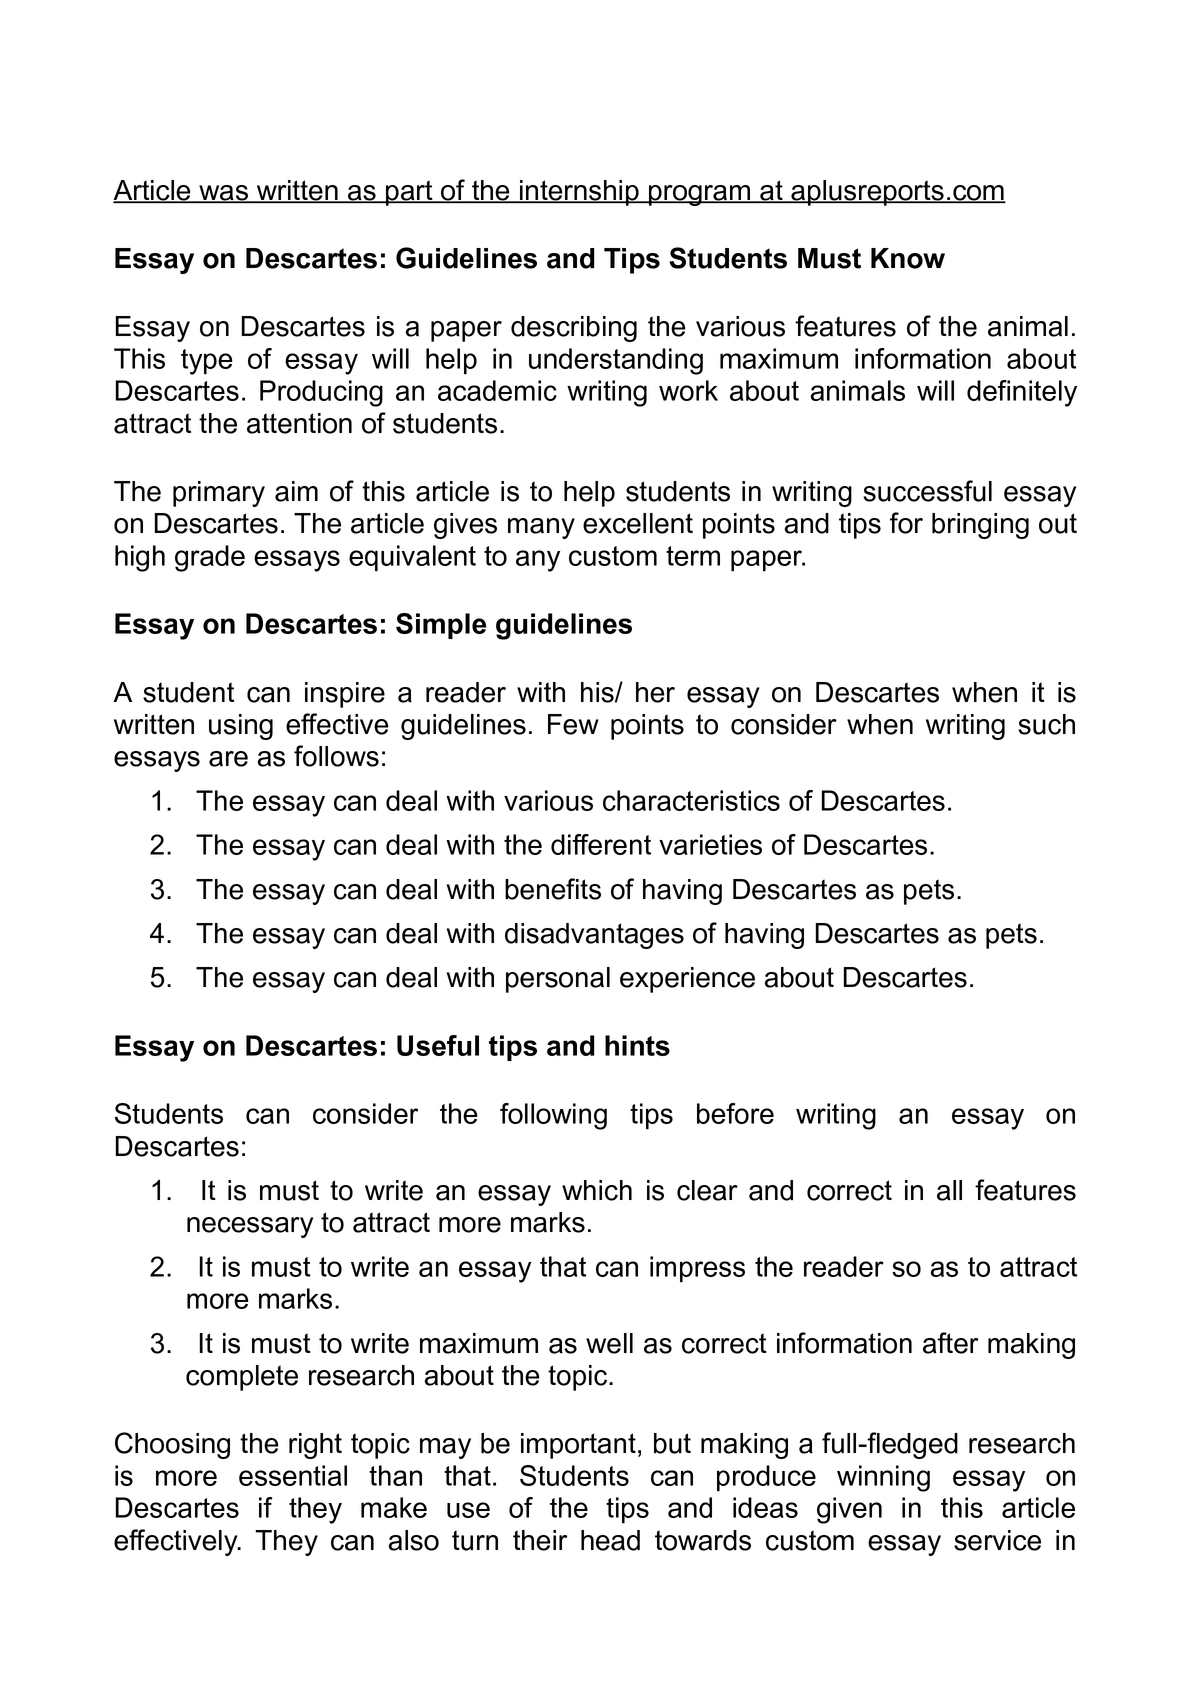 essay on corrupt politicians Essay correction marks essay on dashain and tihar festival research papers on sleep disorders apocalyptic poem analysis essay (meta analysis dental research paper) cmhw essay help deckblatt dissertation uni halle globalization song analysis essay.